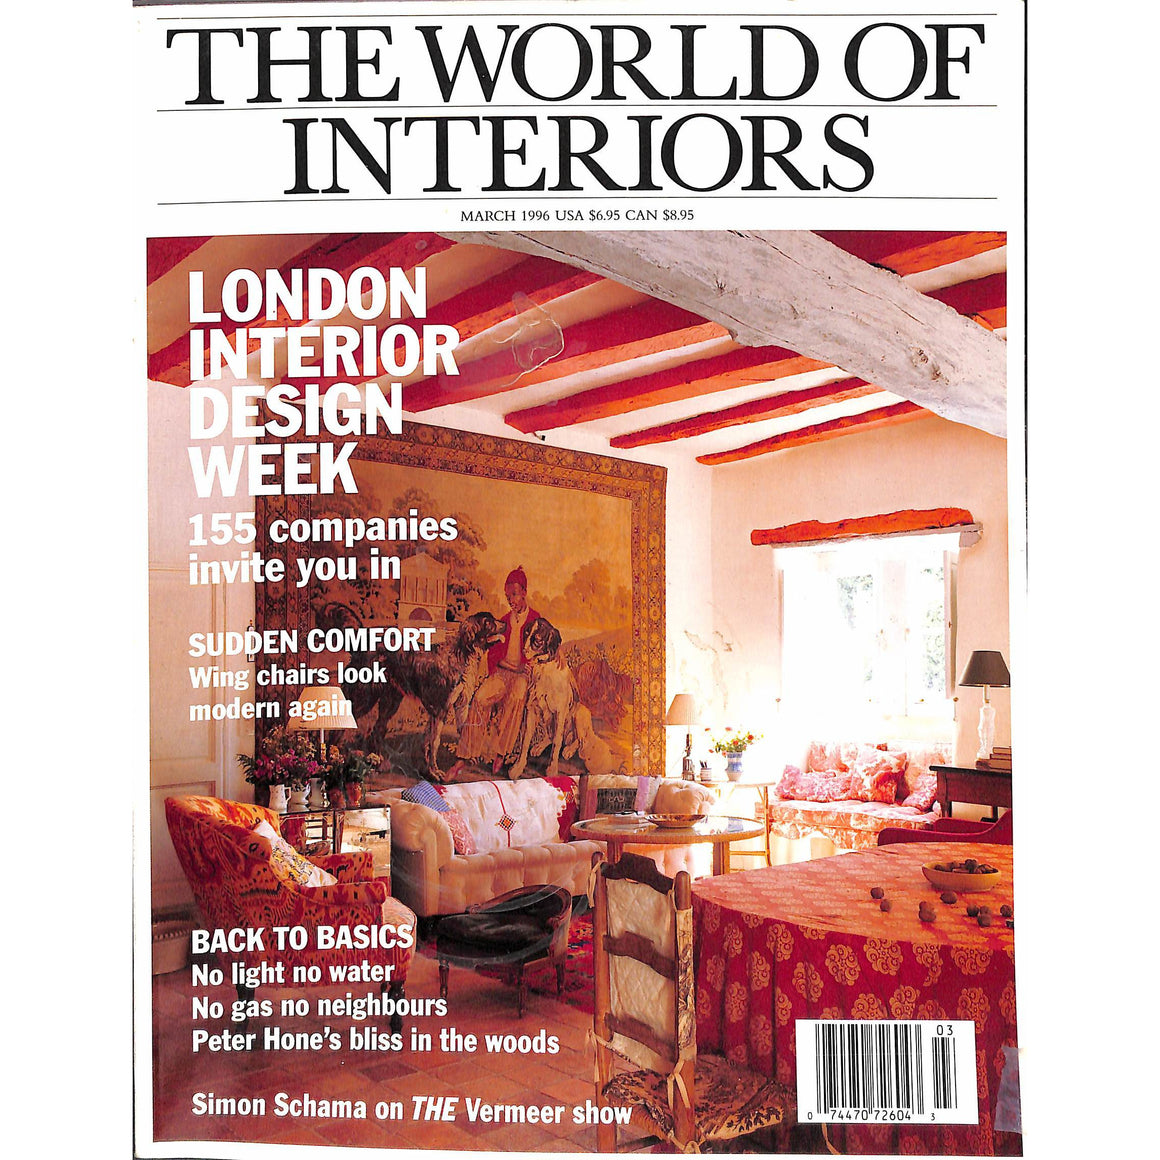 The World of Interiors March 1996